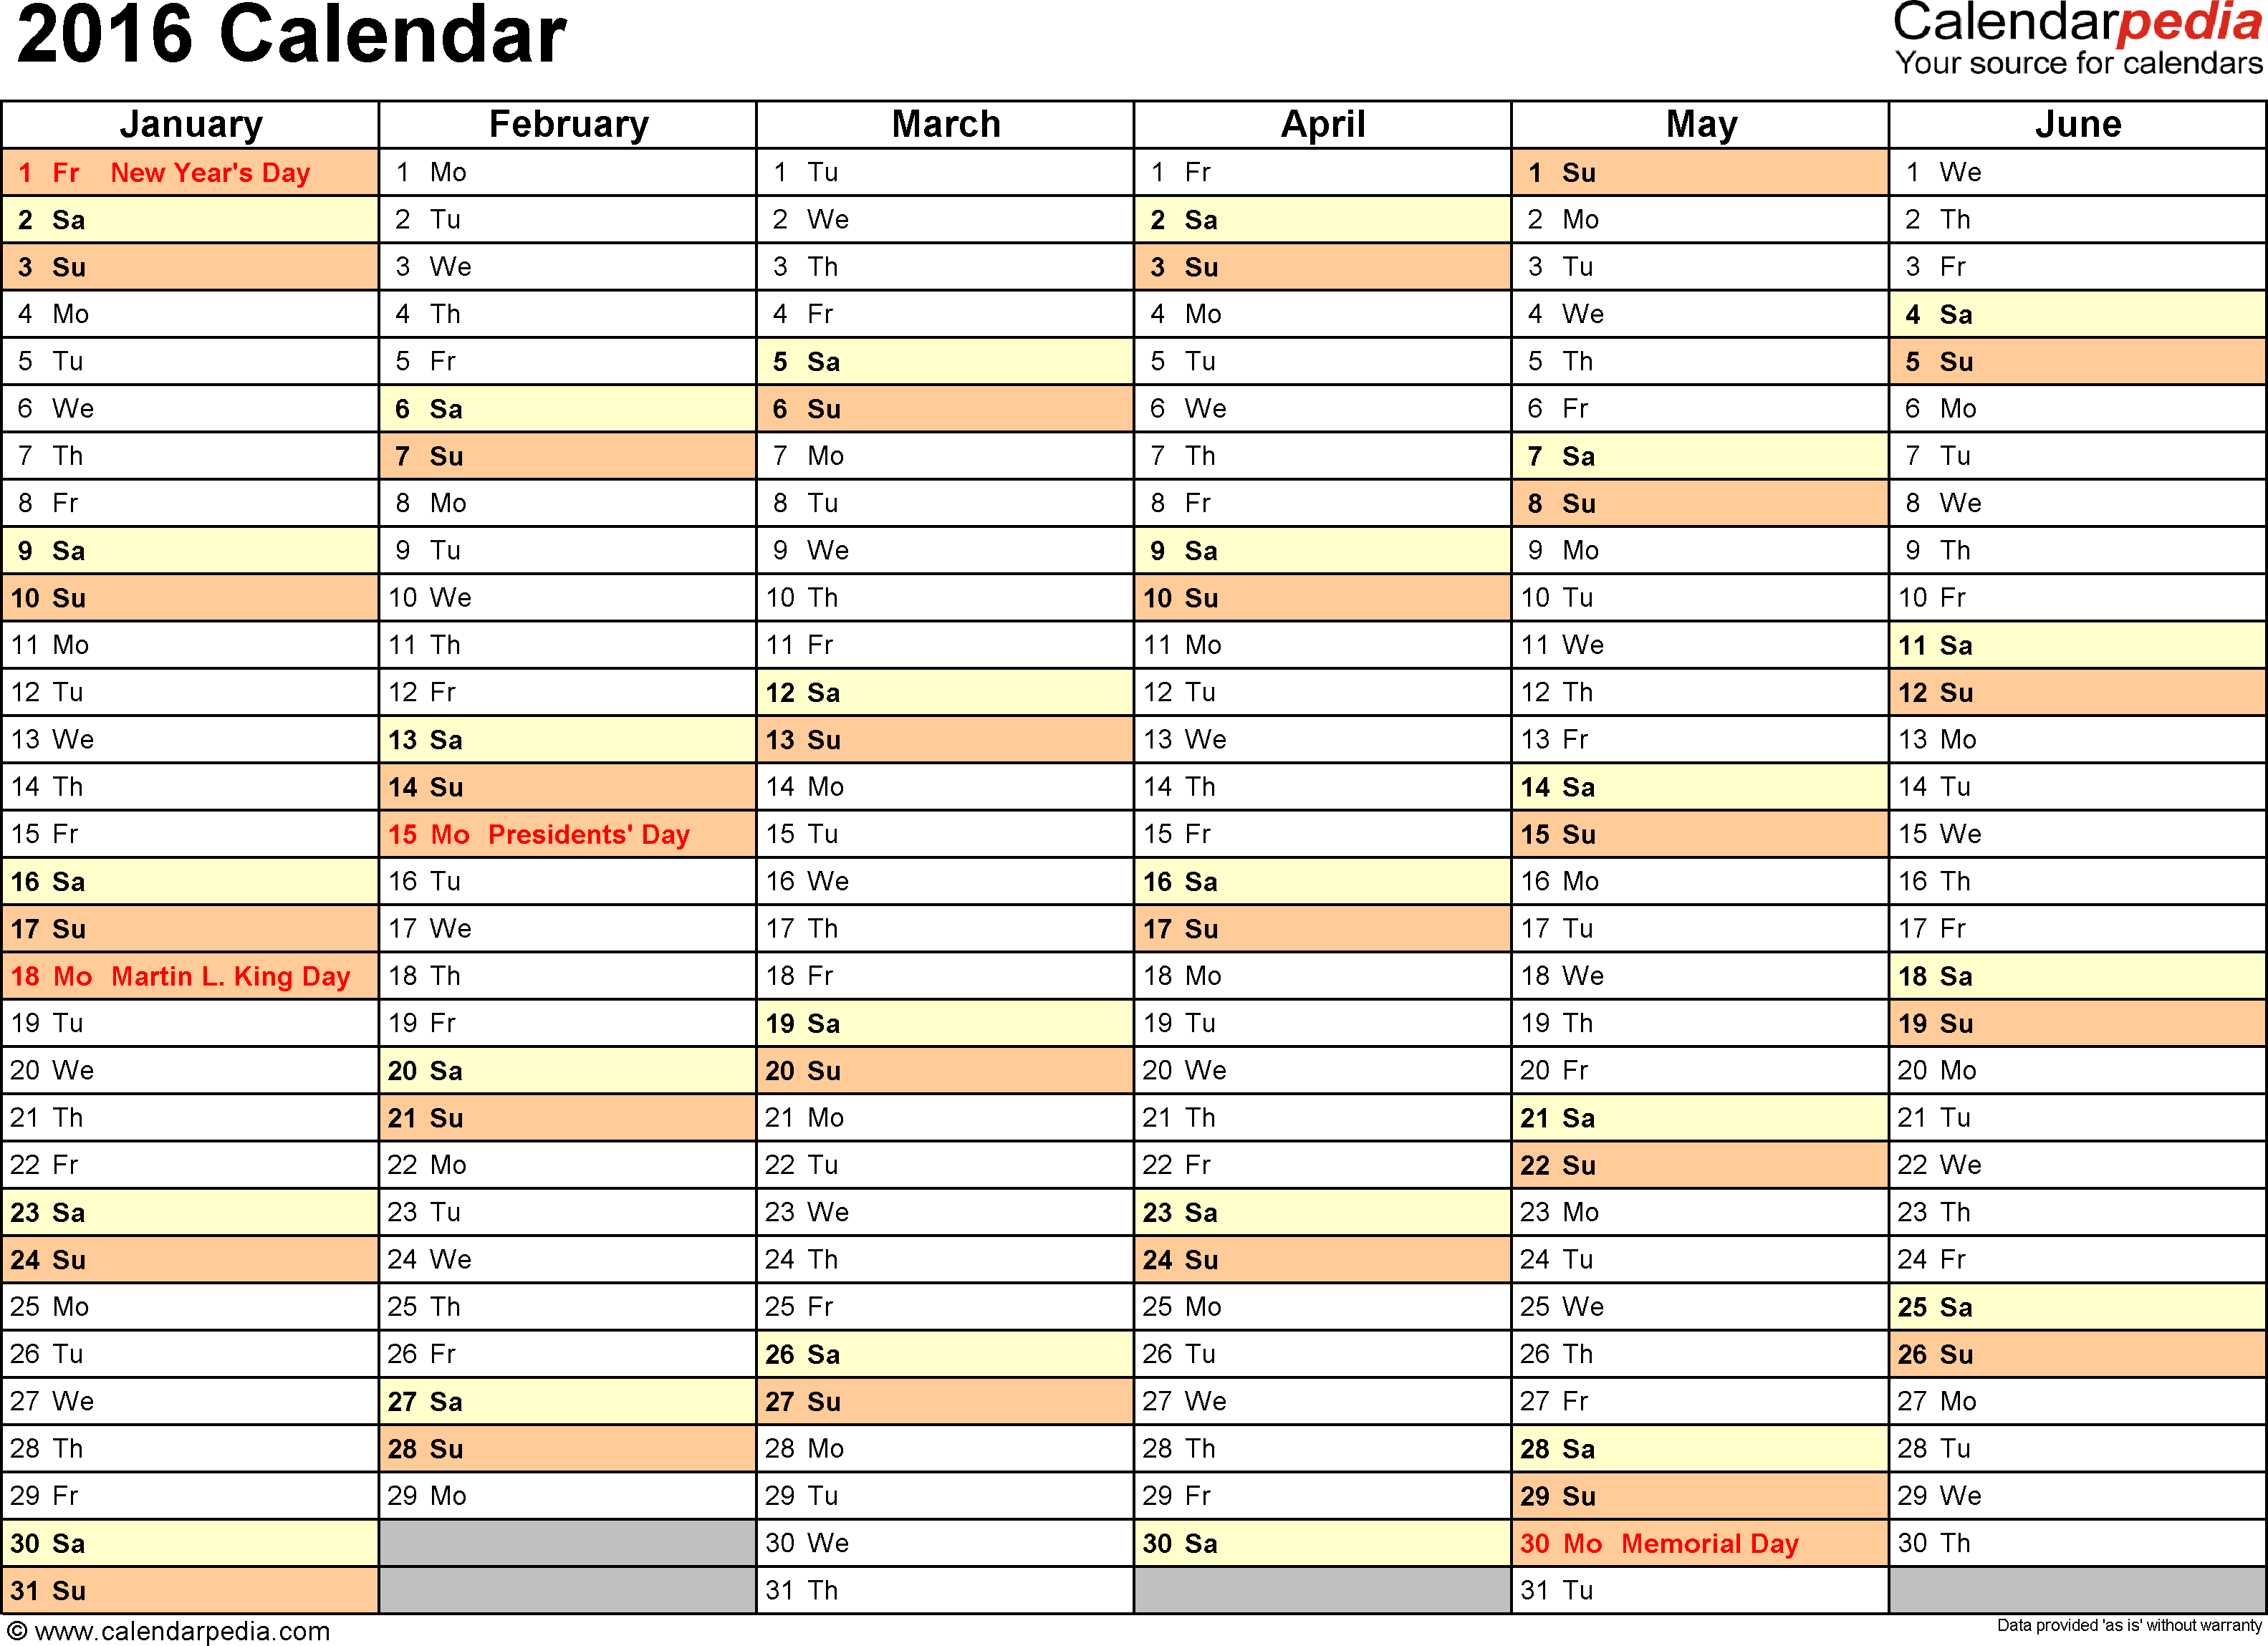 Ediblewildsus  Nice  Calendar  Download  Free Printable Excel Templates Xls With Great Template   Calendar For Excel Months Horizontally  Pages Landscape Orientation With Appealing How To Rank In Excel Also Convert Time To Decimal Excel In Addition How To Ungroup In Excel And Excel Reference Cell As Well As Cagr Excel Formula Additionally Excel Filter Duplicates From Calendarpediacom With Ediblewildsus  Great  Calendar  Download  Free Printable Excel Templates Xls With Appealing Template   Calendar For Excel Months Horizontally  Pages Landscape Orientation And Nice How To Rank In Excel Also Convert Time To Decimal Excel In Addition How To Ungroup In Excel From Calendarpediacom